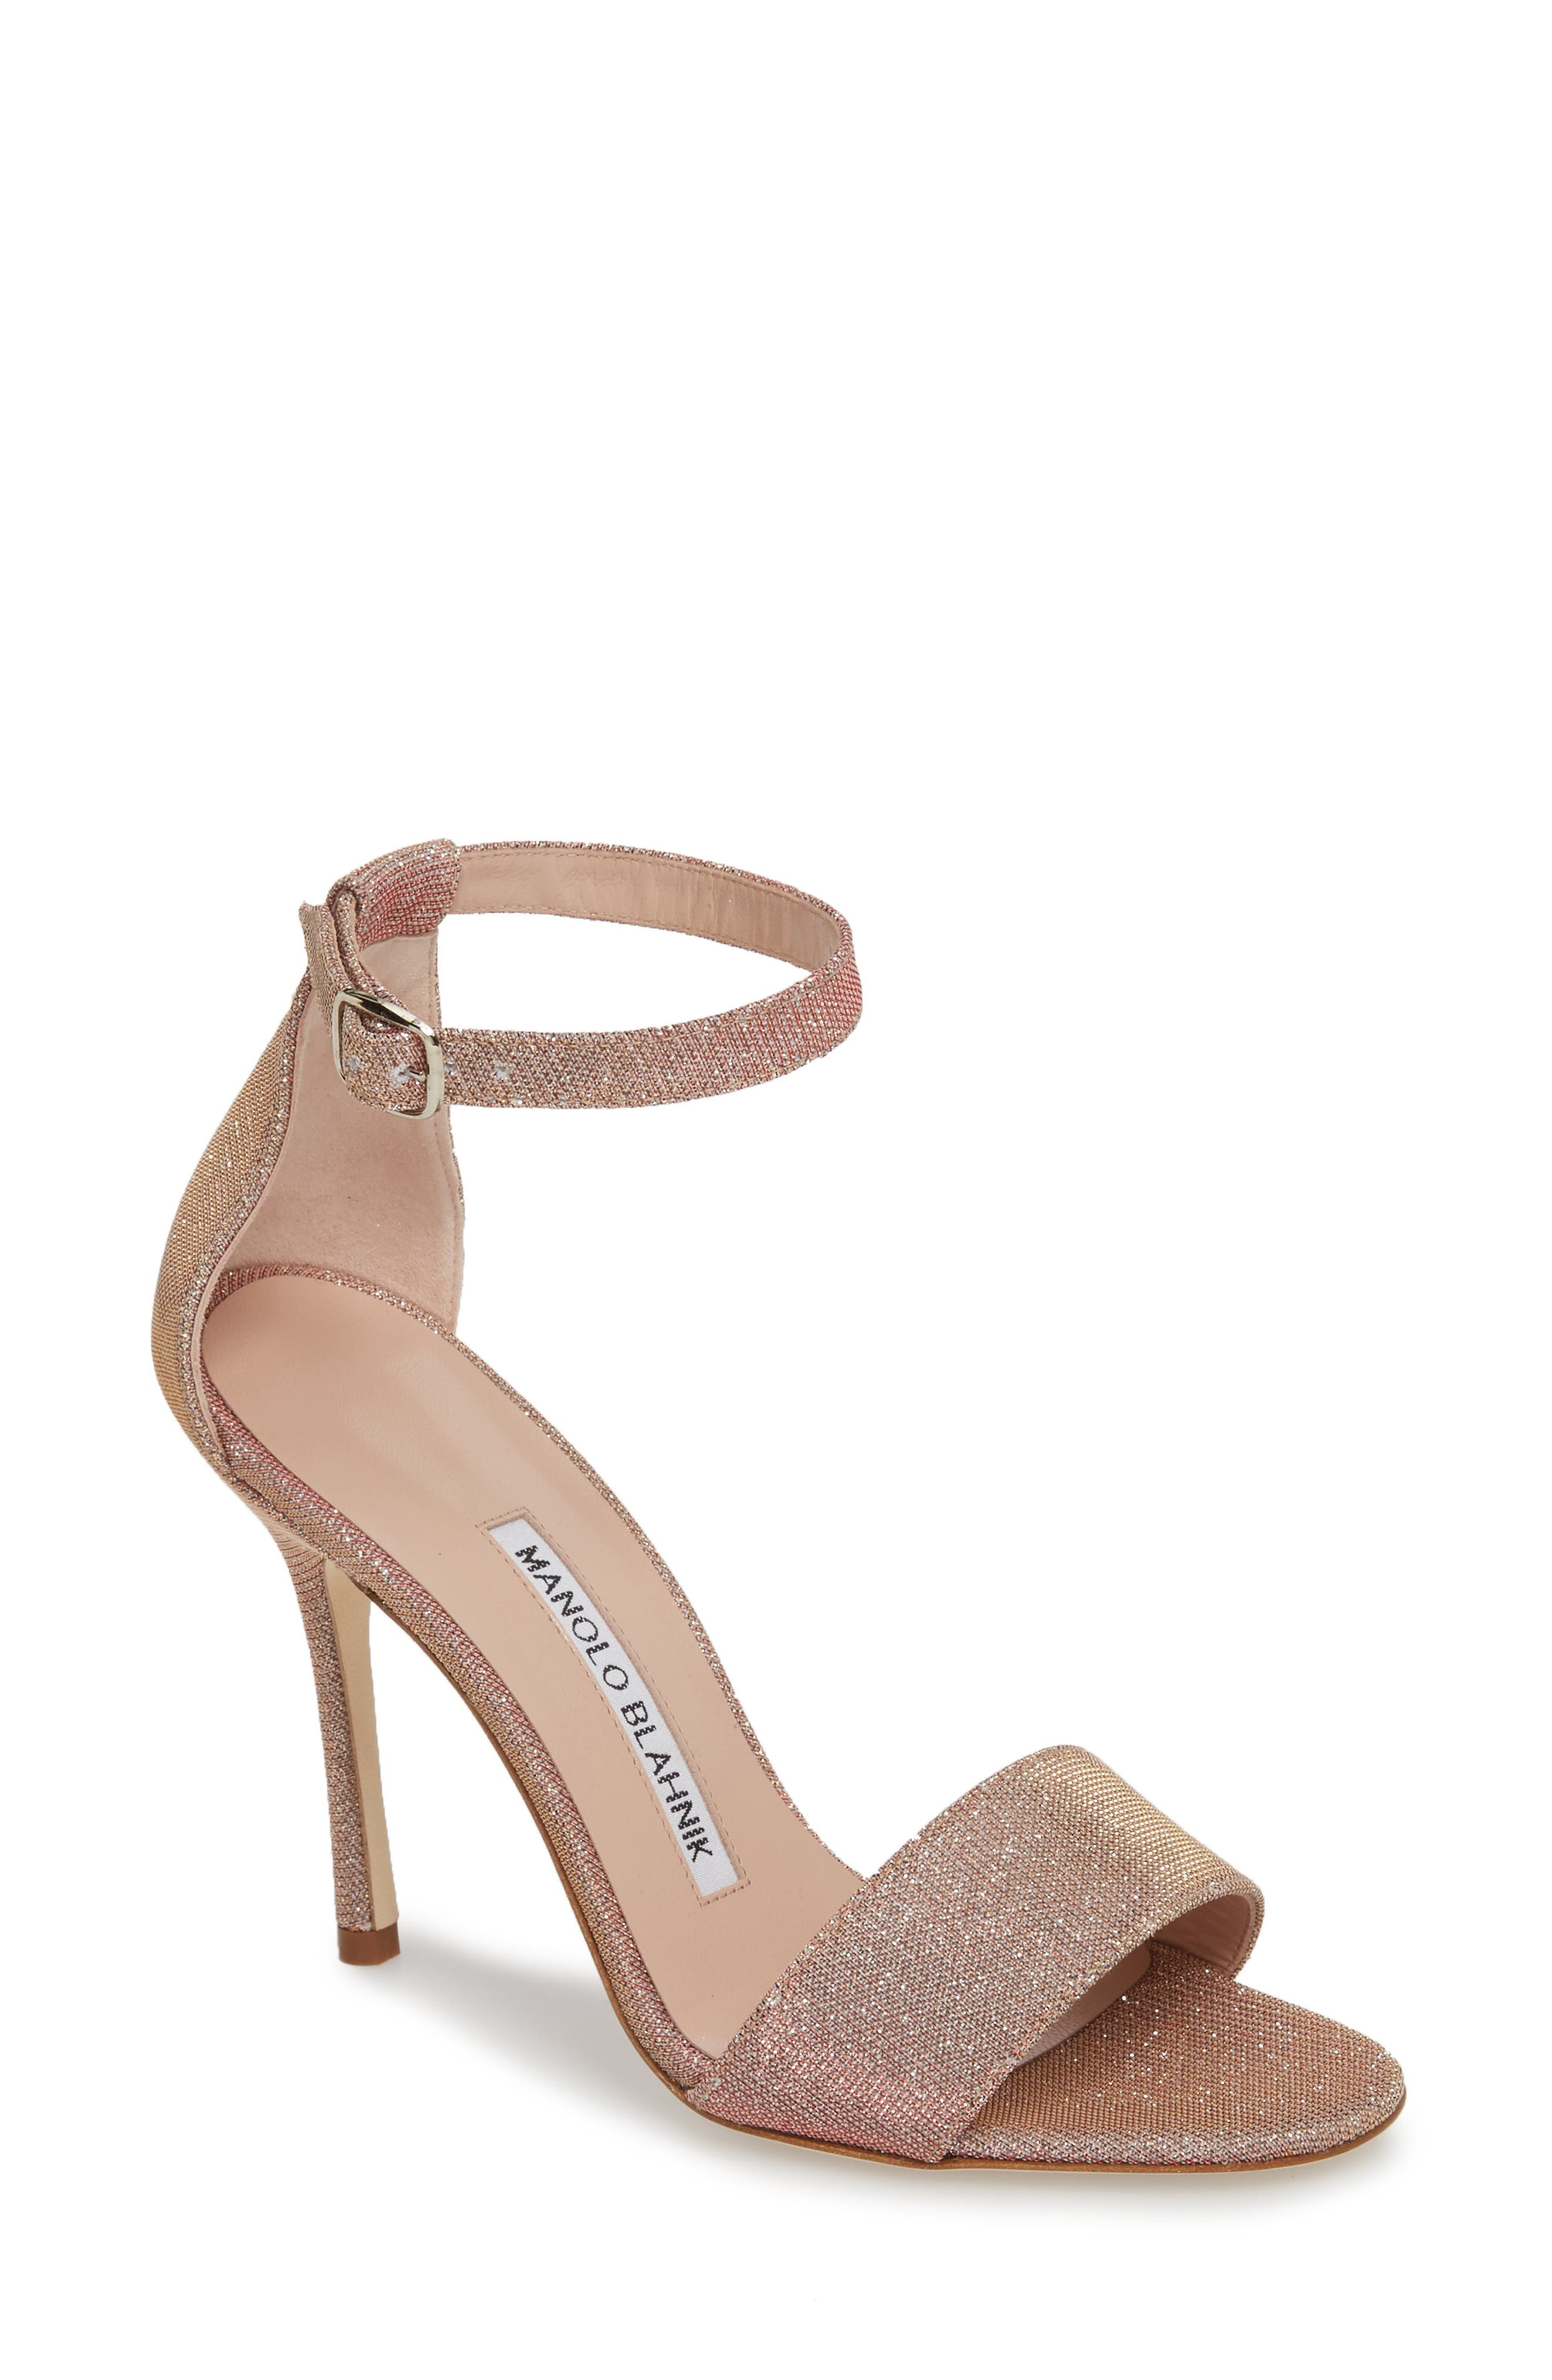 Tres Ankle Strap Sandal,                             Main thumbnail 1, color,                             Champagne Notturno